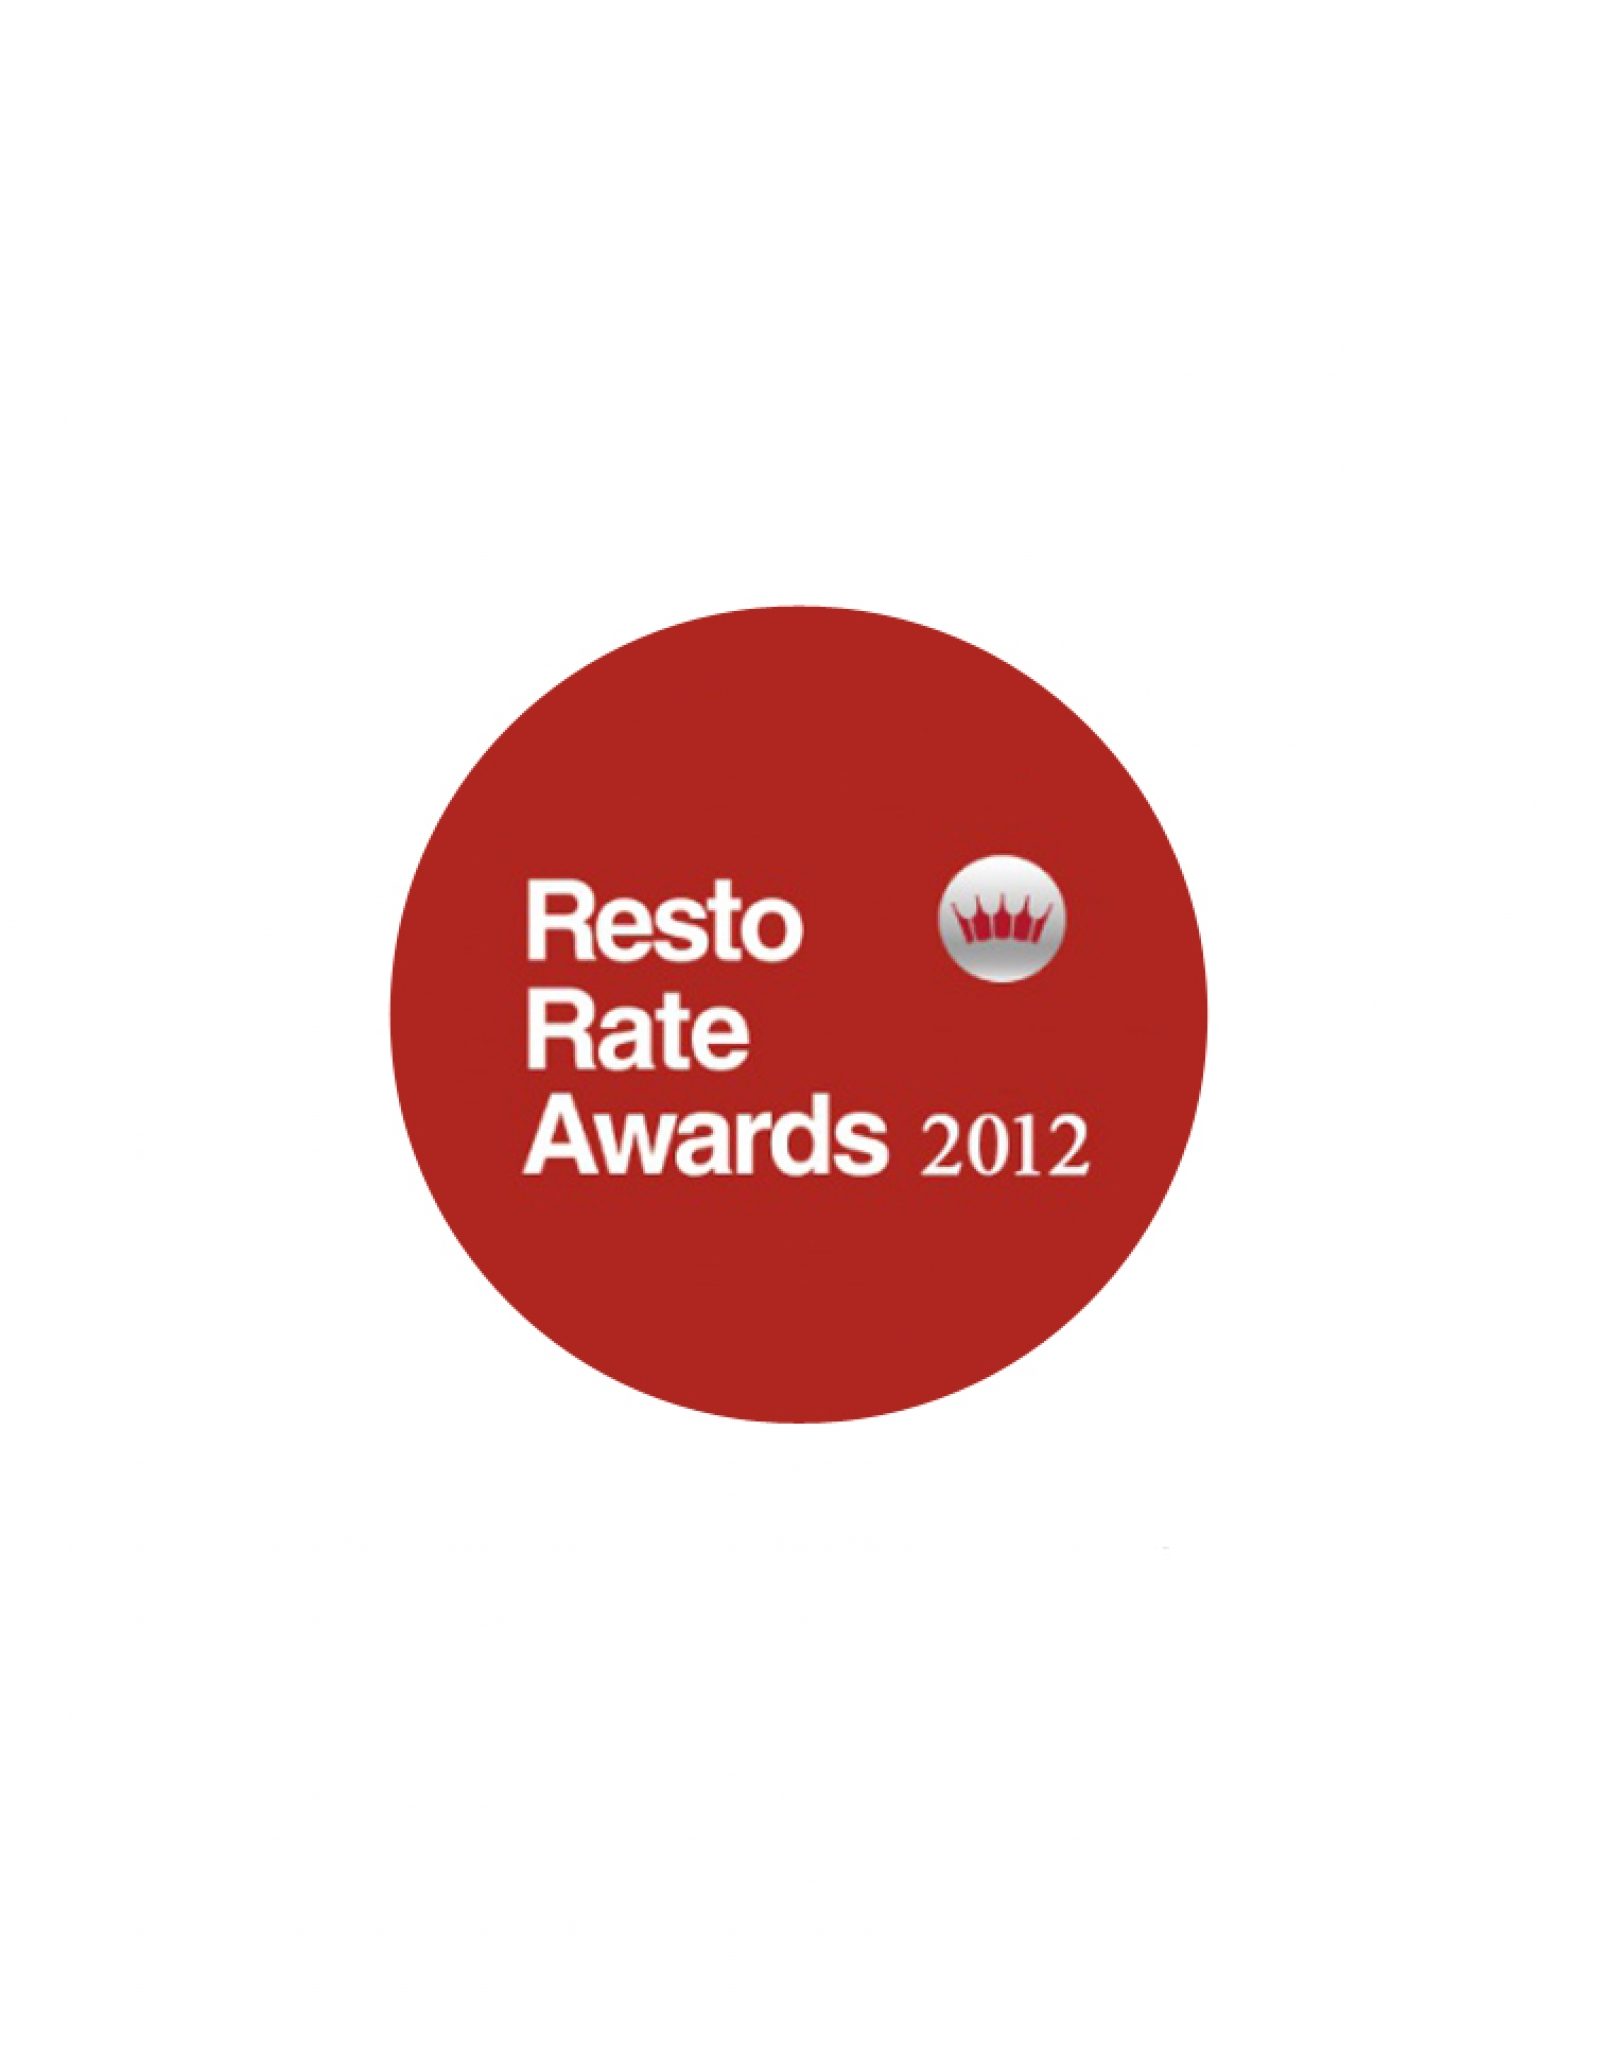 RESTO RATE AWARDS 2012 WINNER